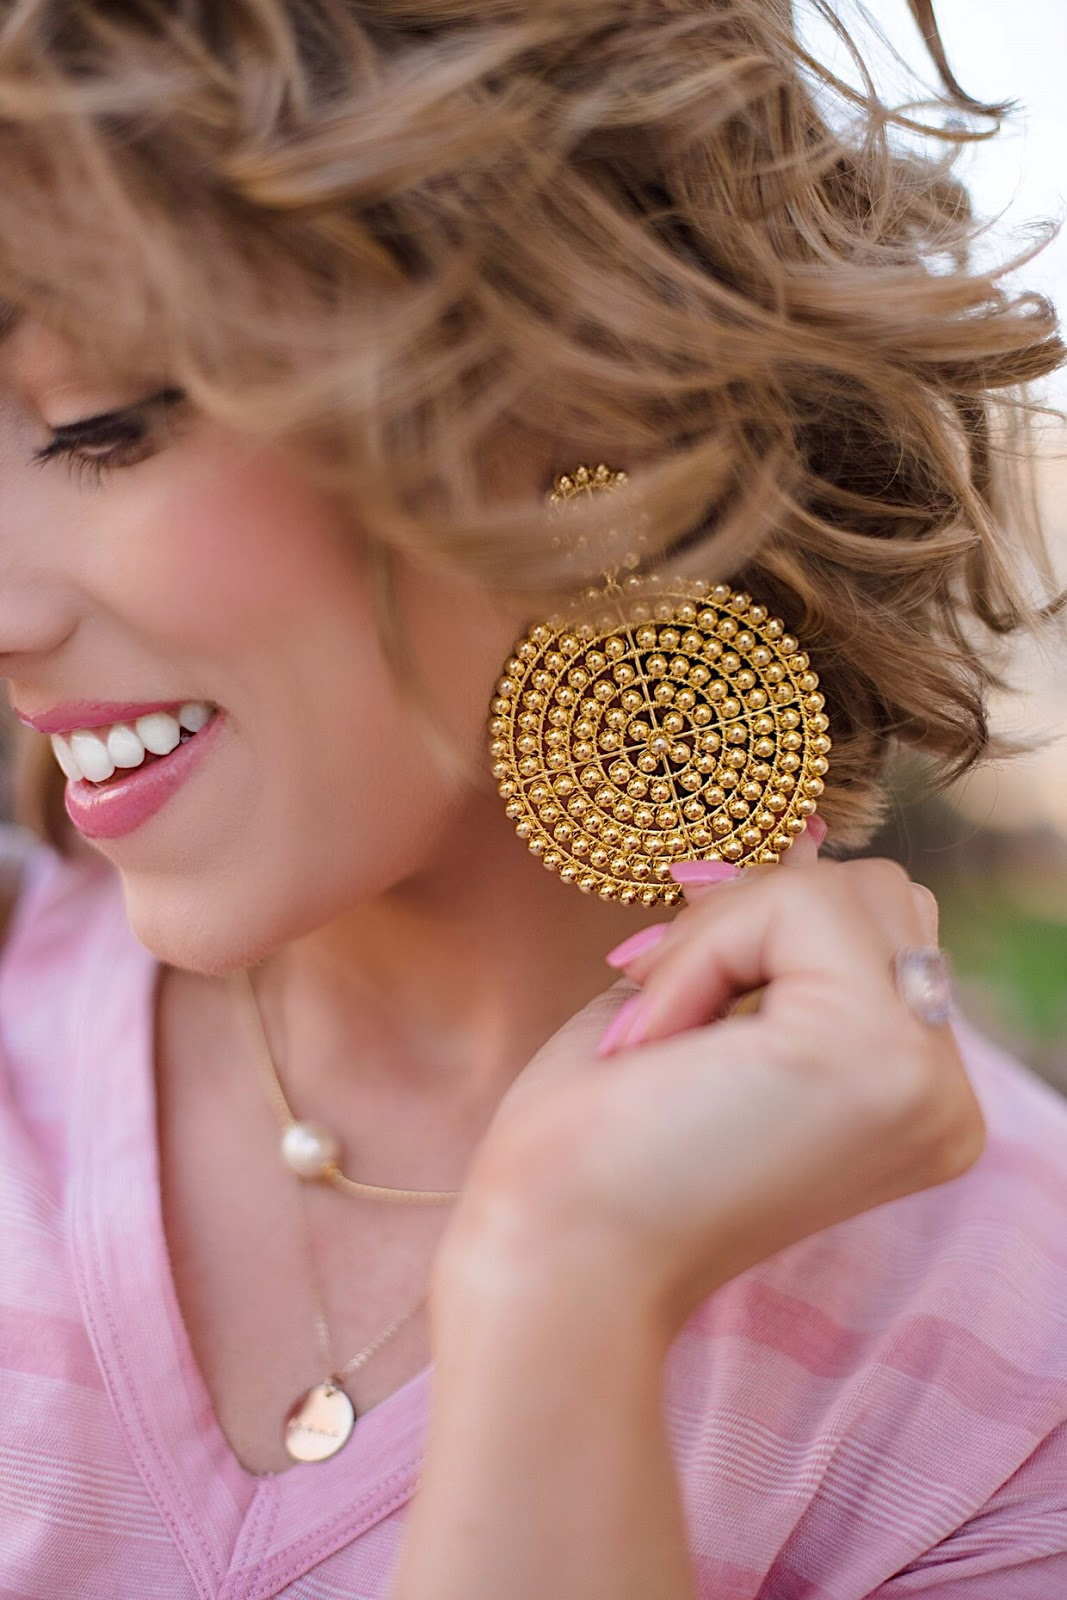 Lisi Lerch Gold Disk Earrings - Click through to see the full post + outfit details on Something Delightful Blog